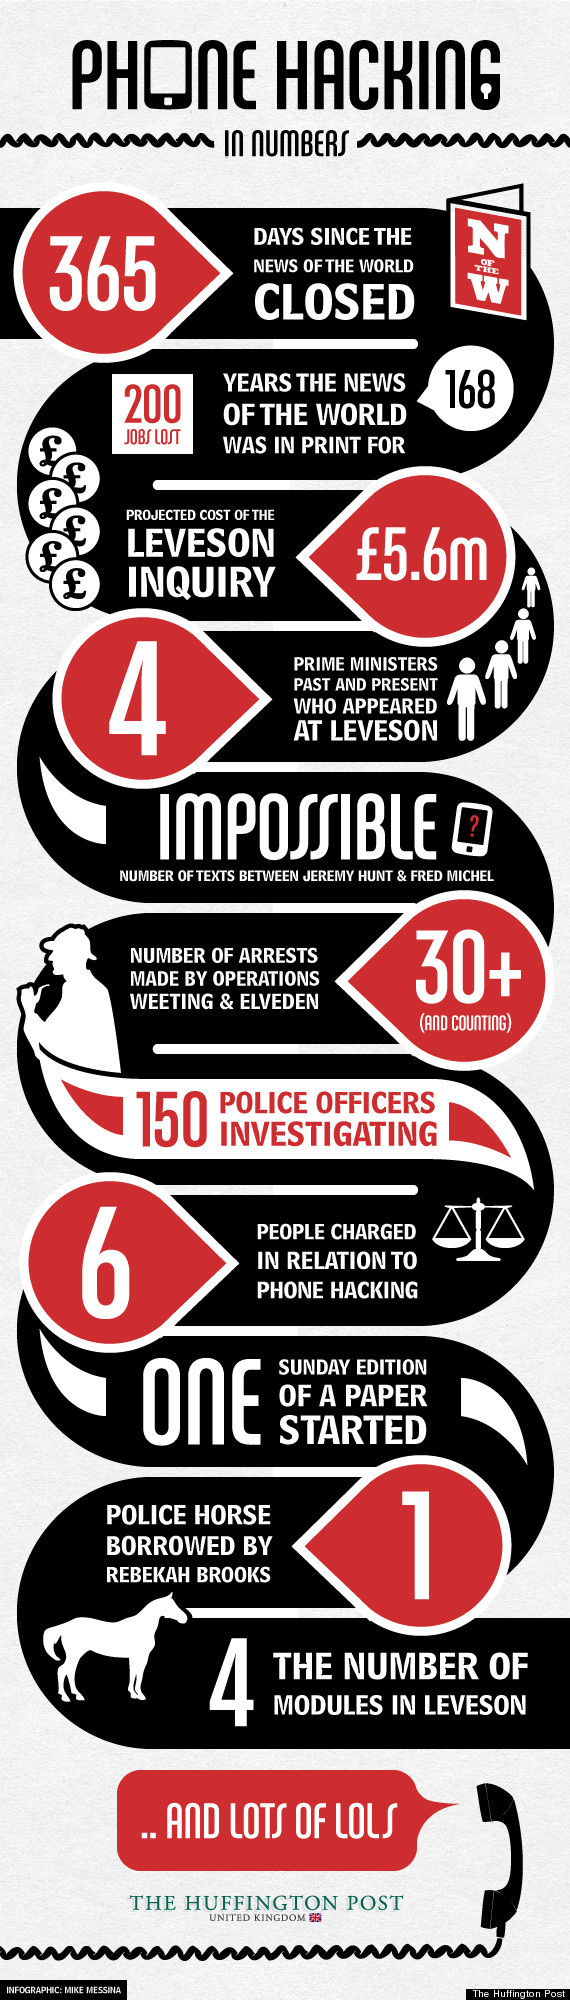 phone hacking in numbers